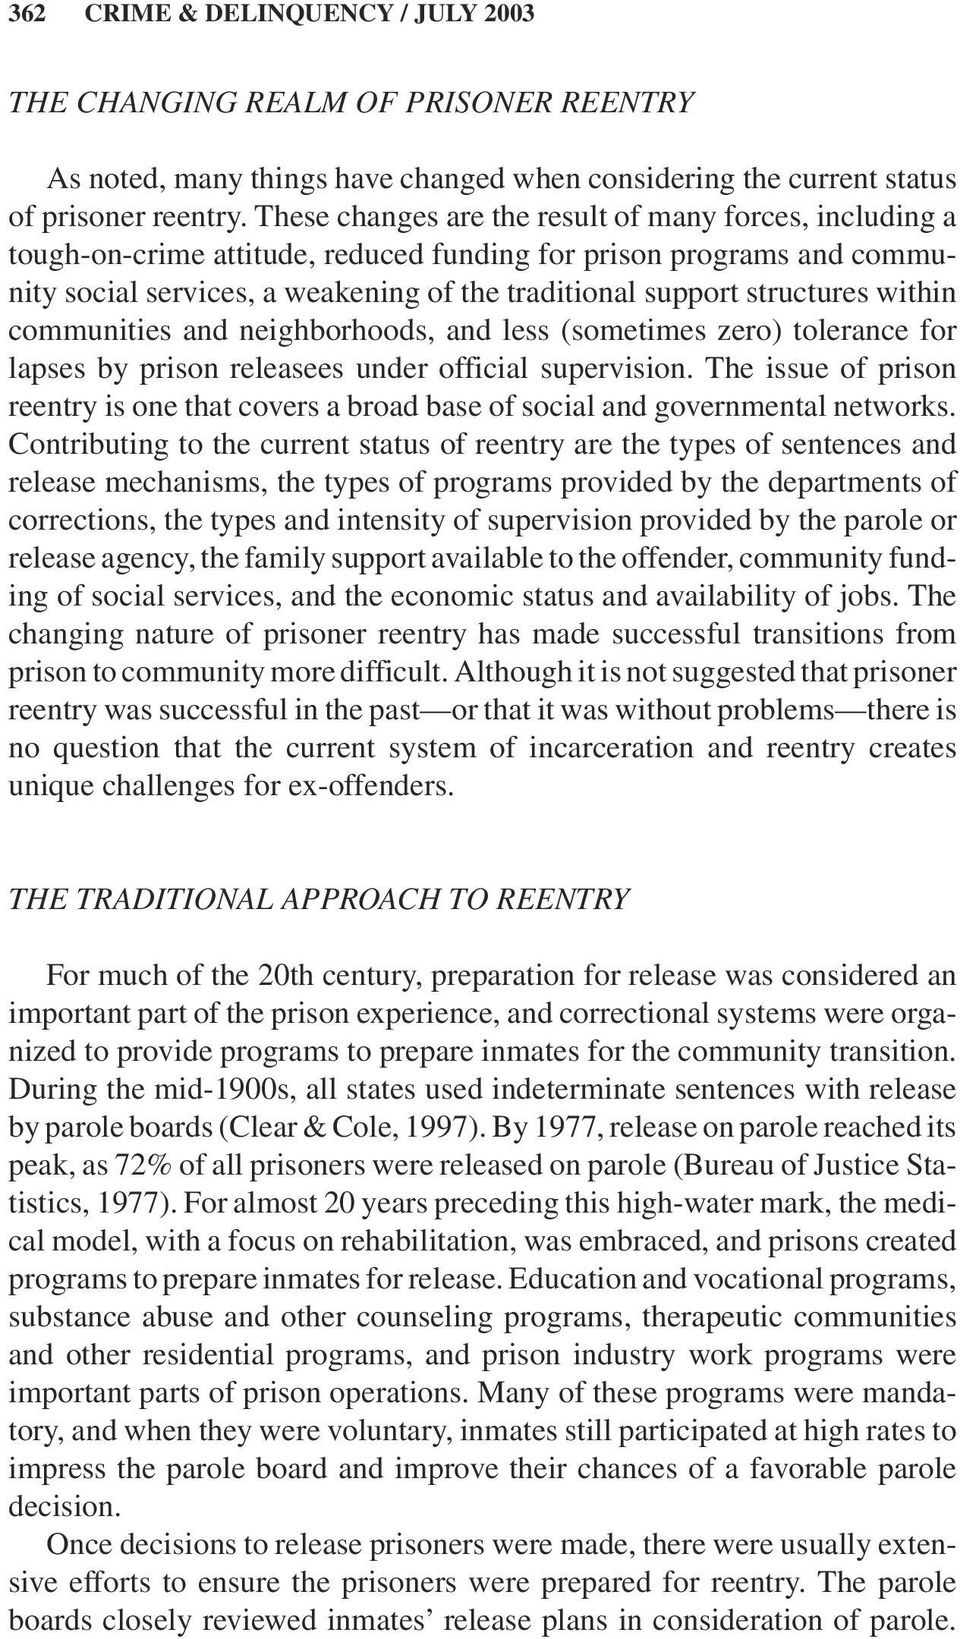 within communities and neighborhoods, and less (sometimes zero) tolerance for lapses by prison releasees under official supervision.